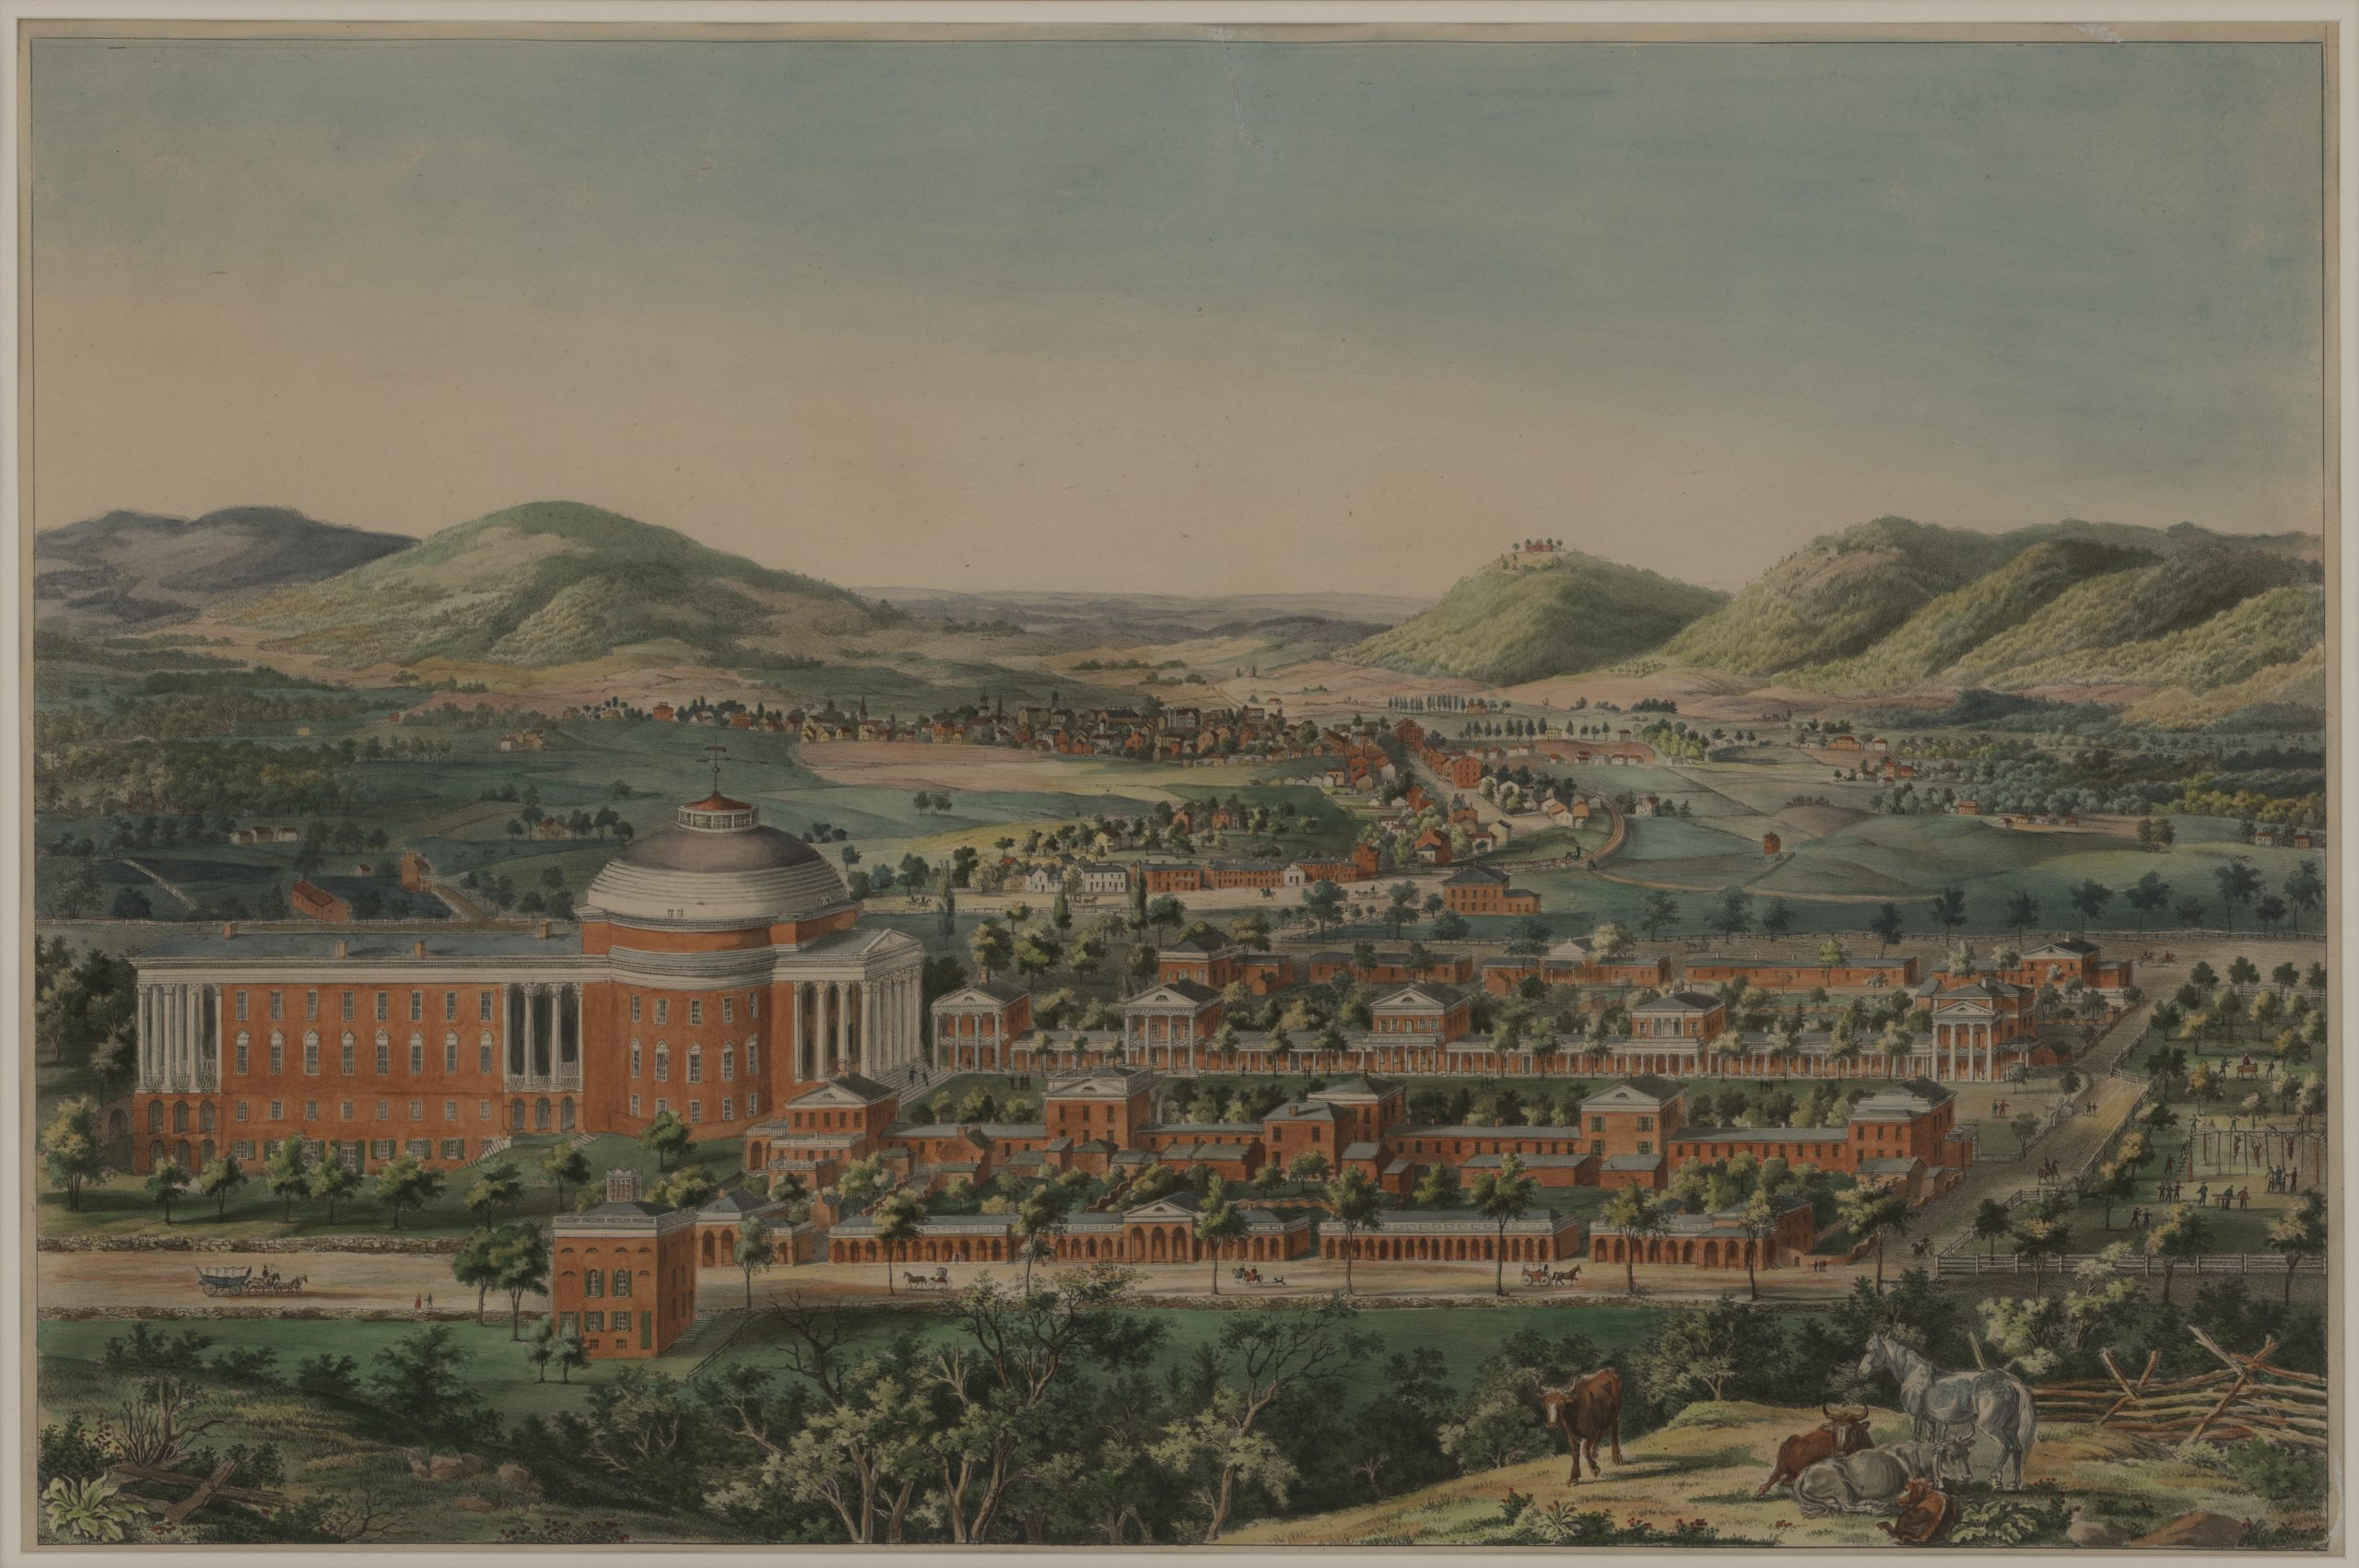 View of the University of Virginia